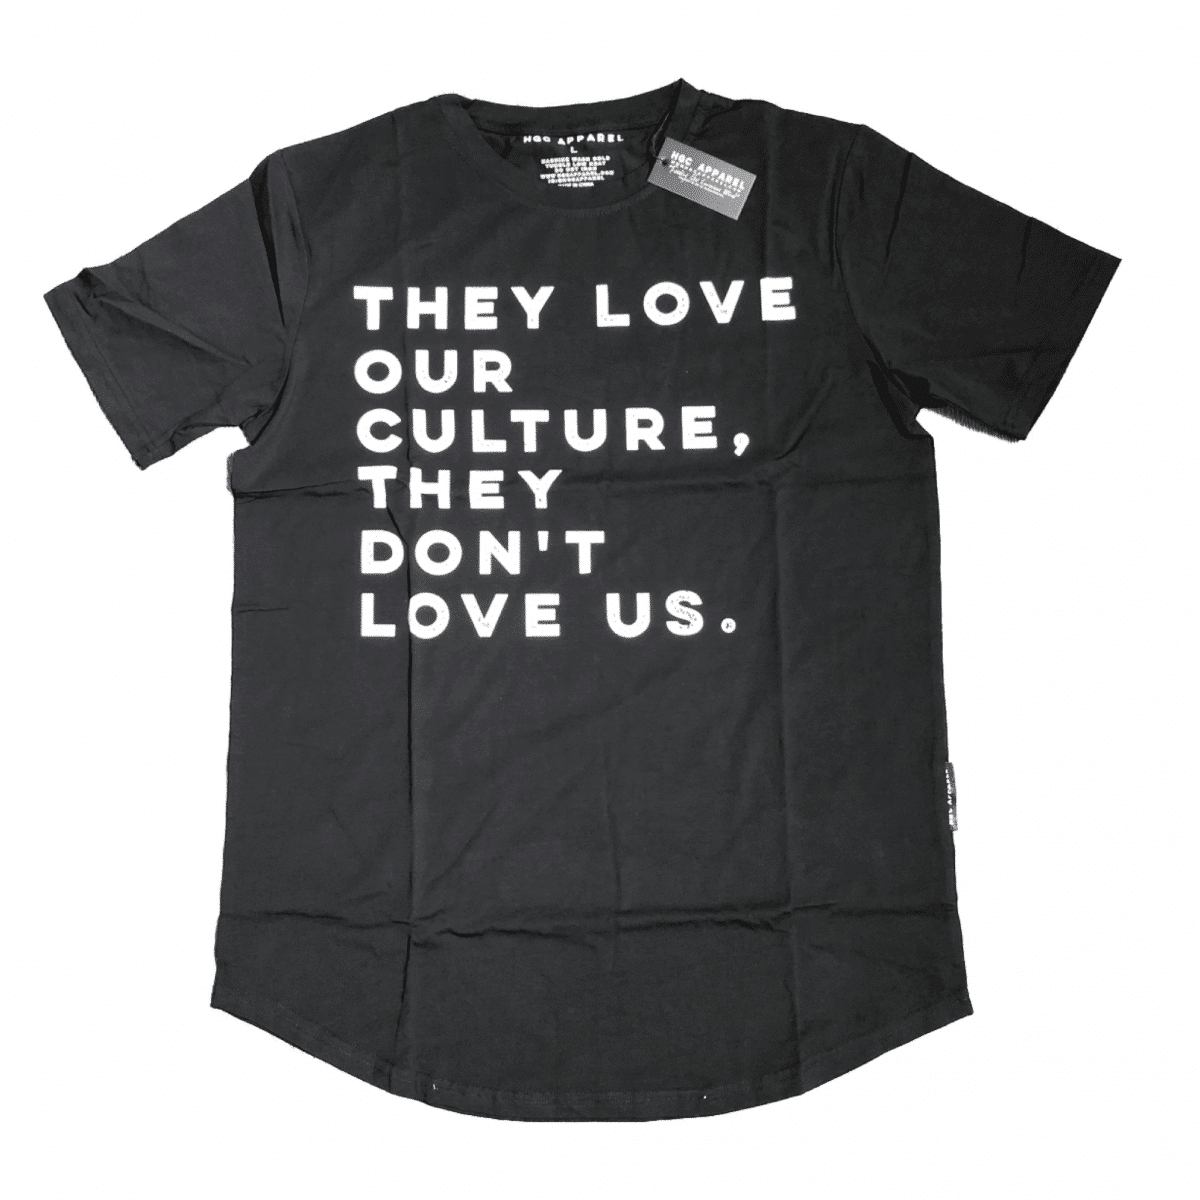 THEY LOVE OUR CULTURE, THEY DON'T LOVE US® Black Unisex Shirt HGC Apparel